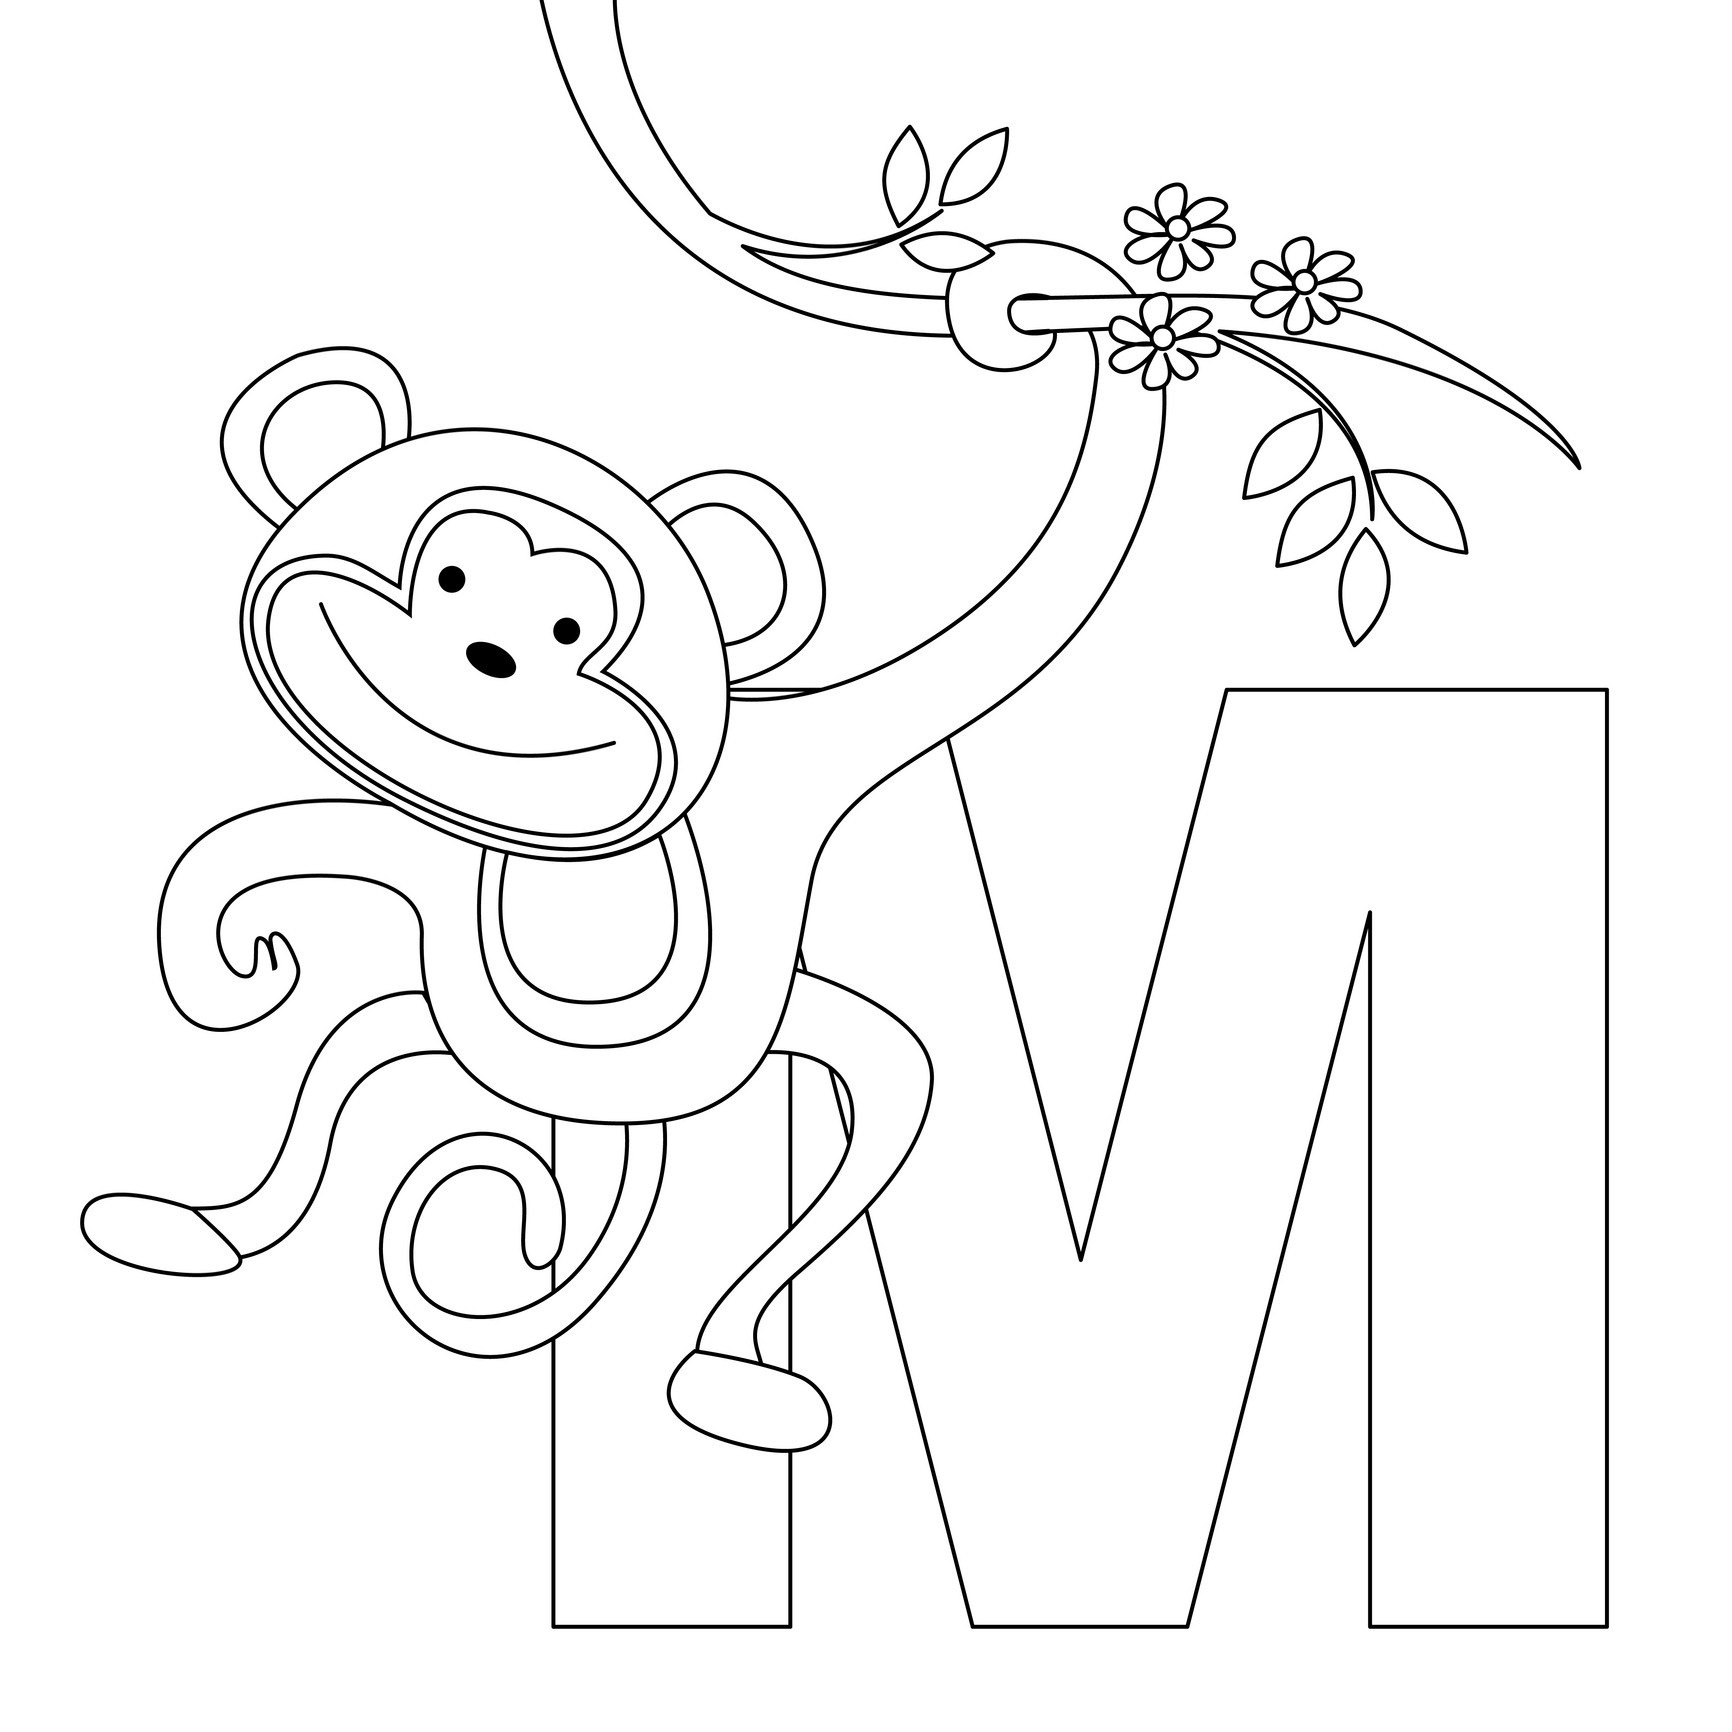 Free printable monkey coloring pages for kids Coloring book for kid free download